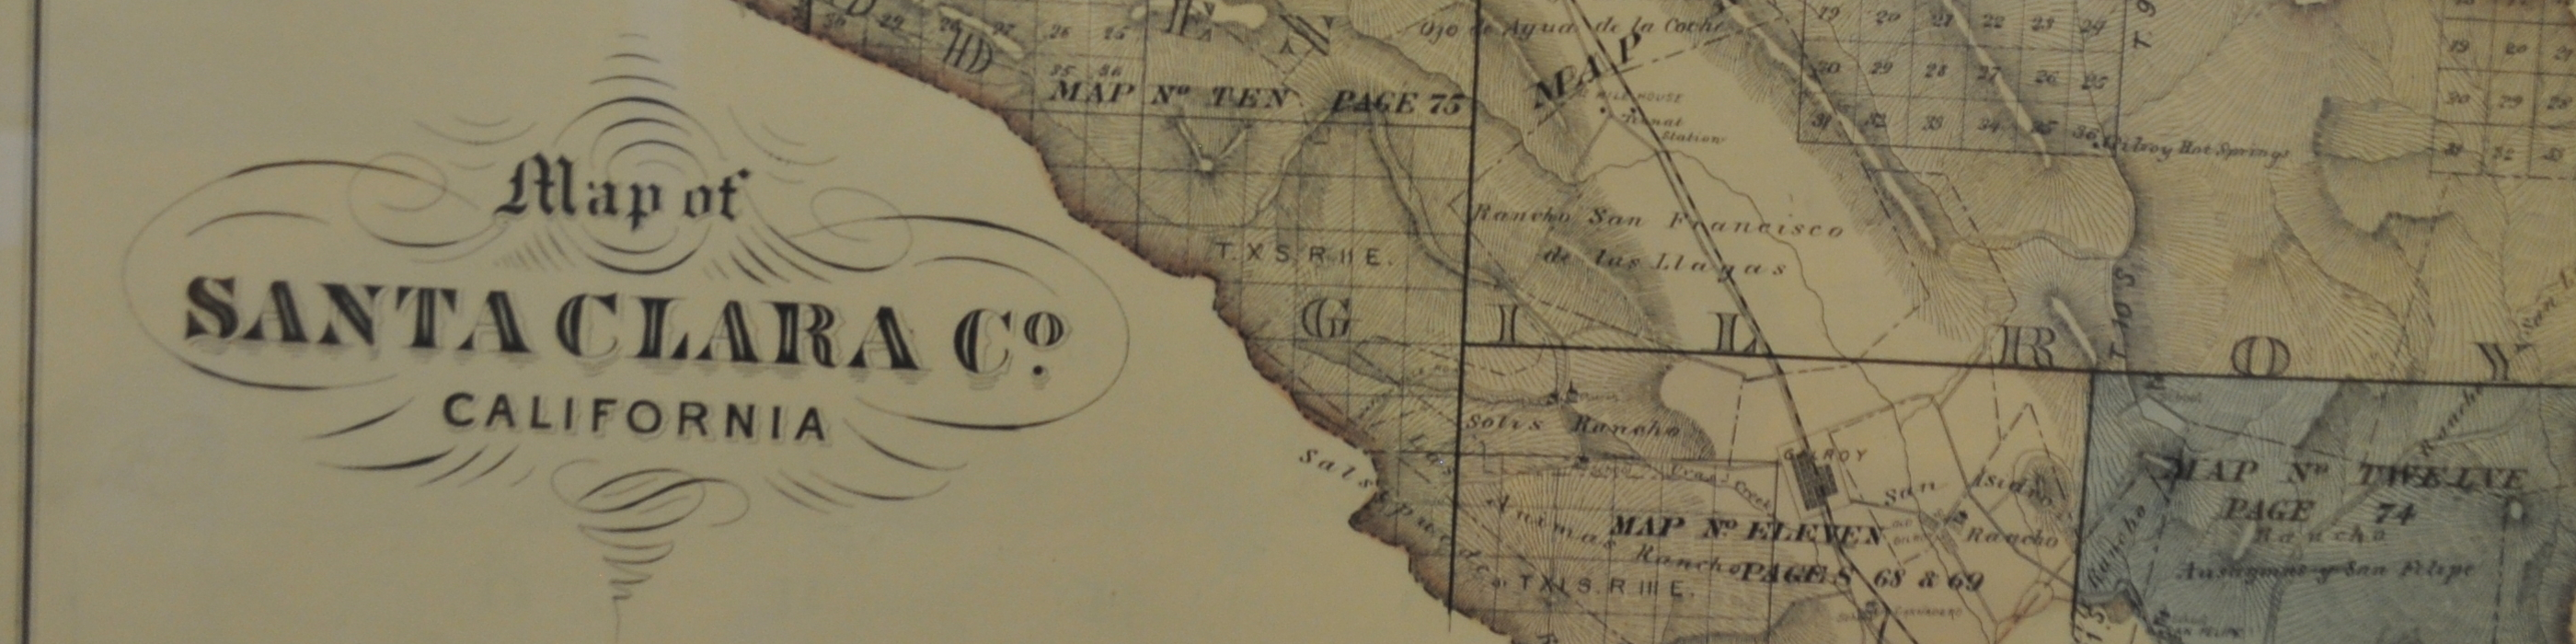 Old map of Santa Clara County